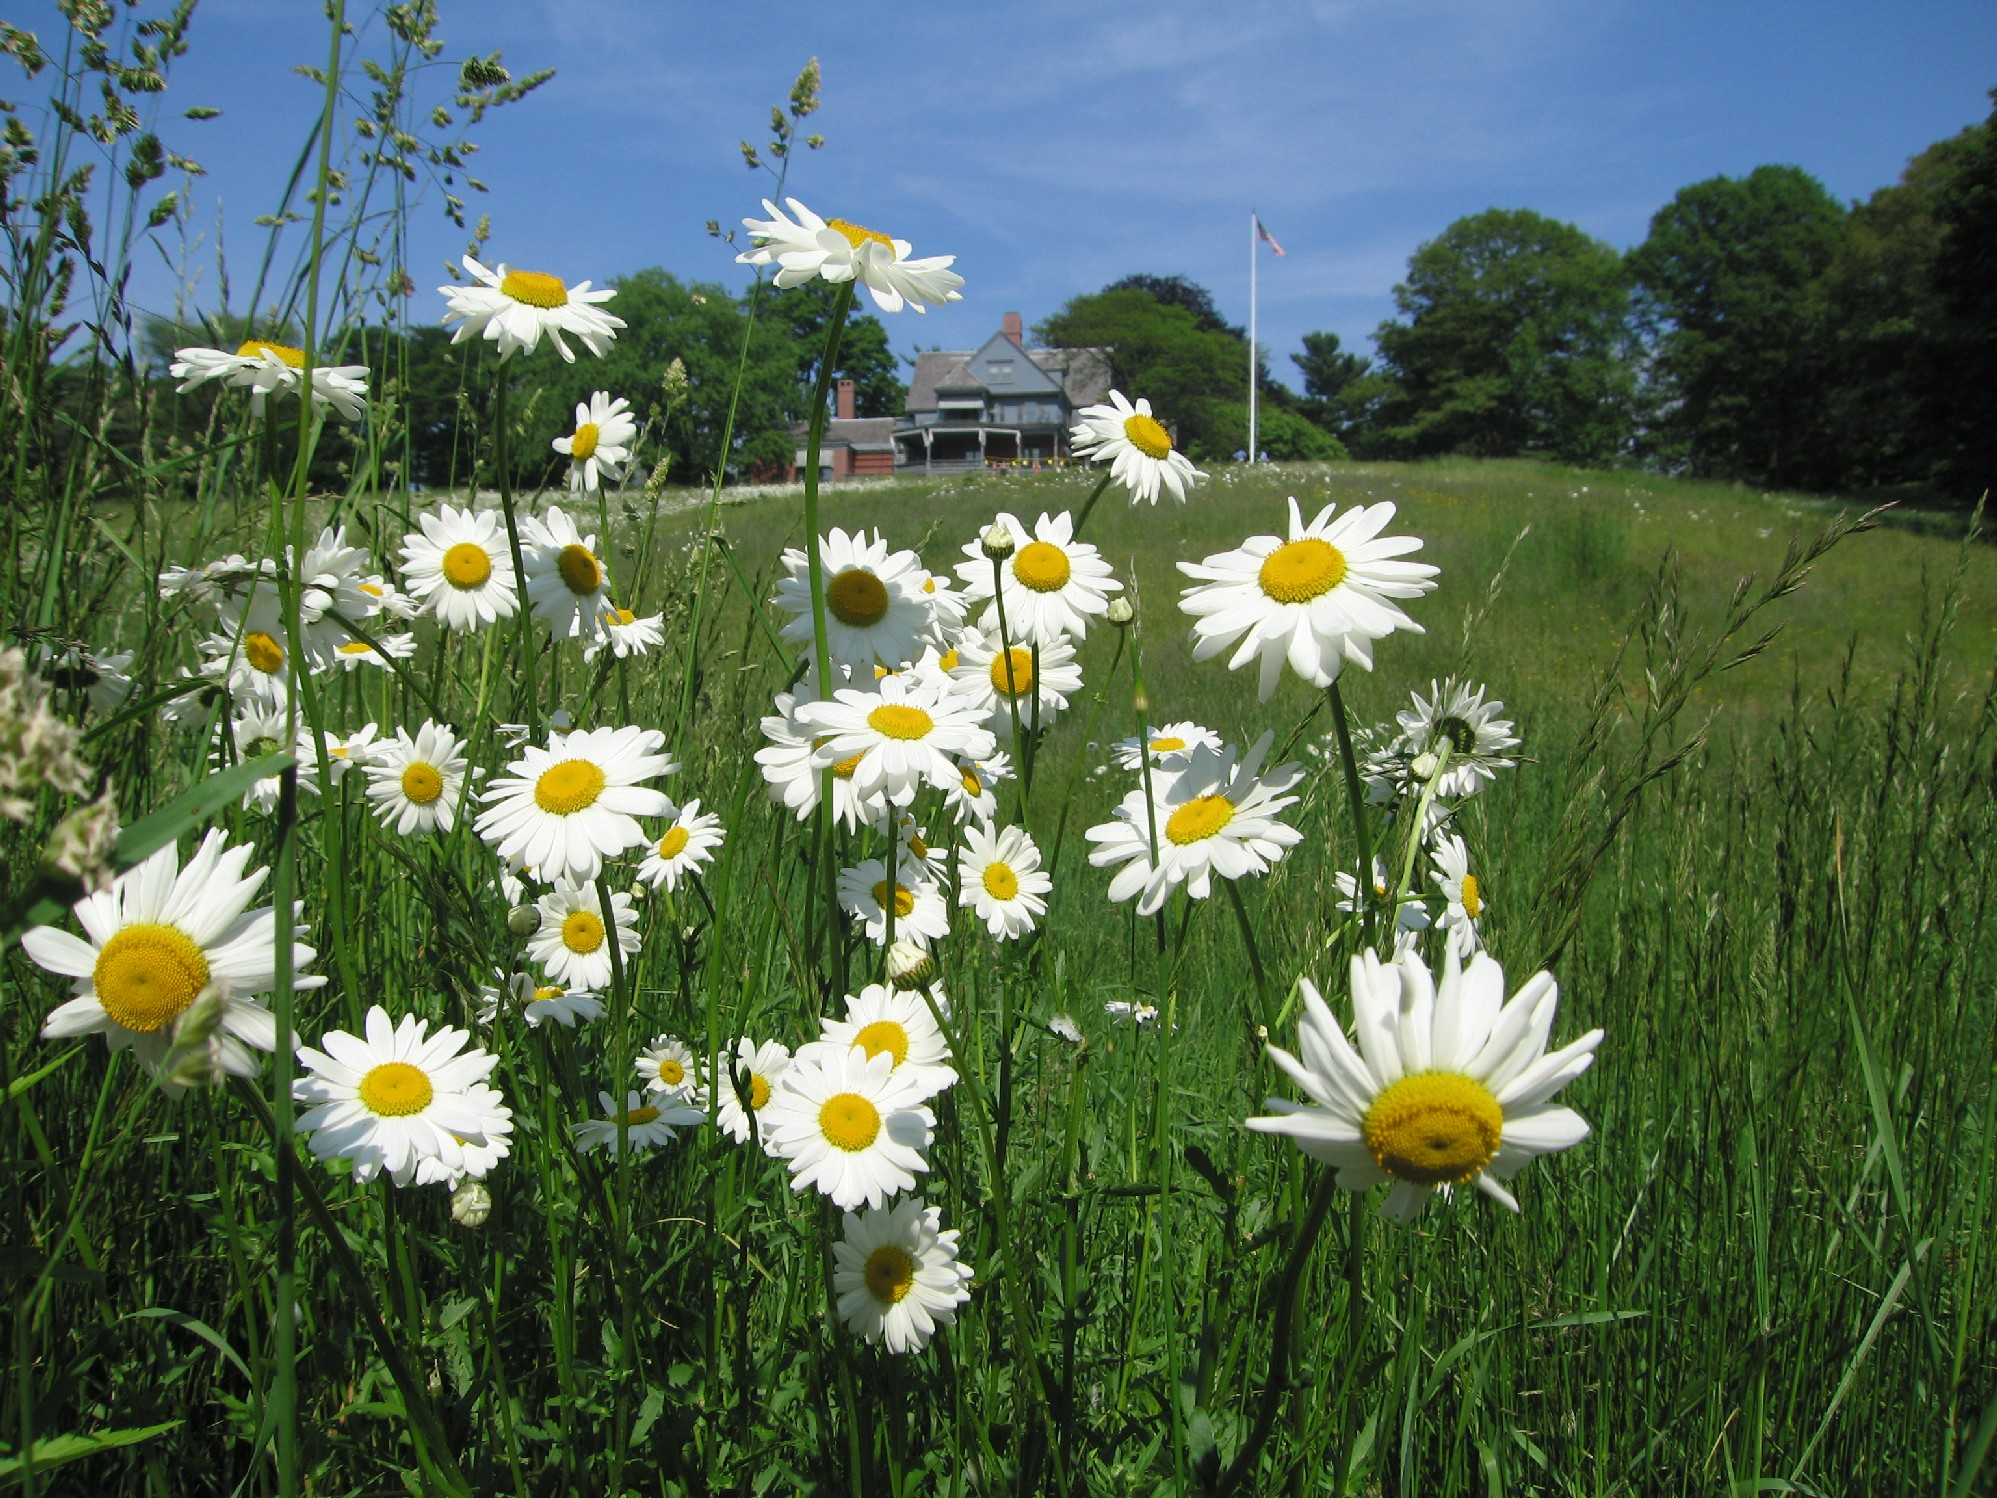 Daisies in front of Sagamore Hill